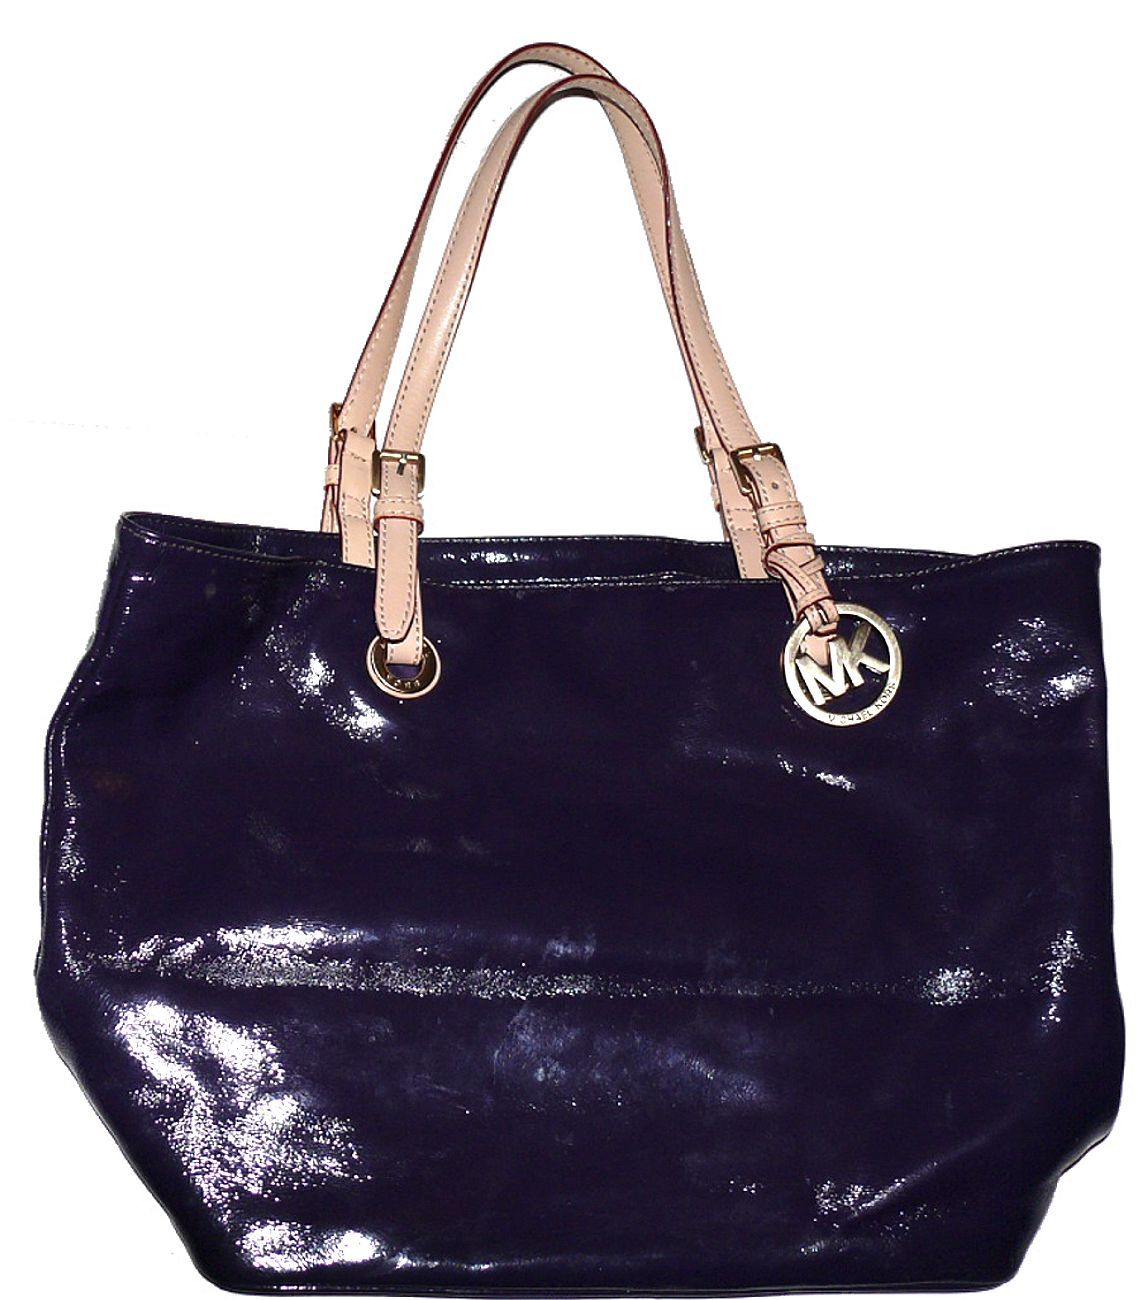 7952d4f50986 Michael Kors Tote Patent Leather Jet Set B-0905 Purple Plum Eggplant Dust  Bag